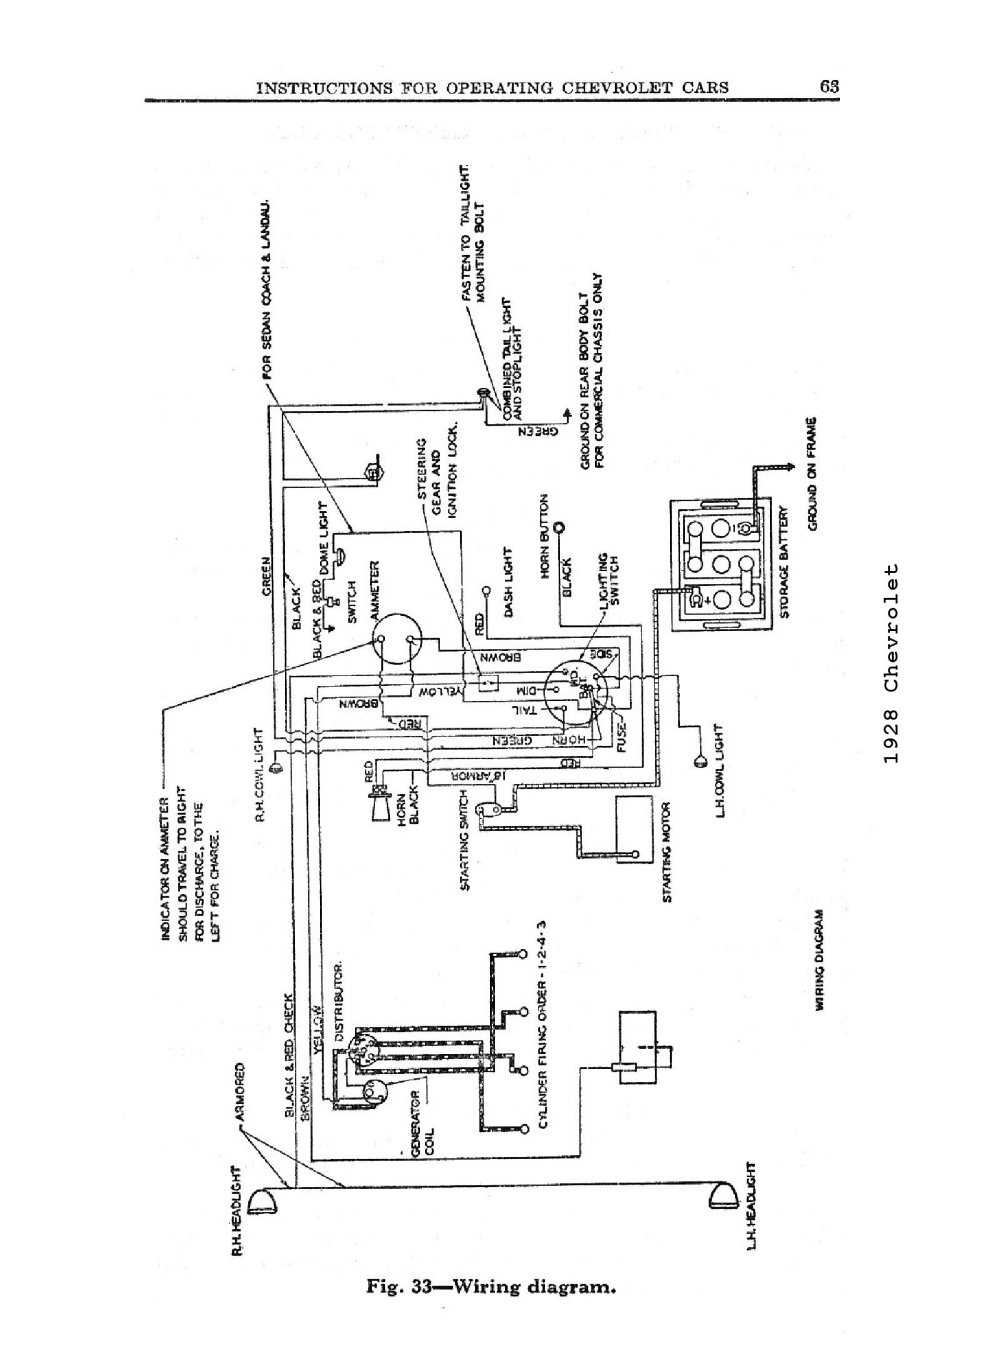 medium resolution of wiring diagram for 1954 chevy bel air wiring diagram megachevy wiring diagrams 1928 1928 wiring